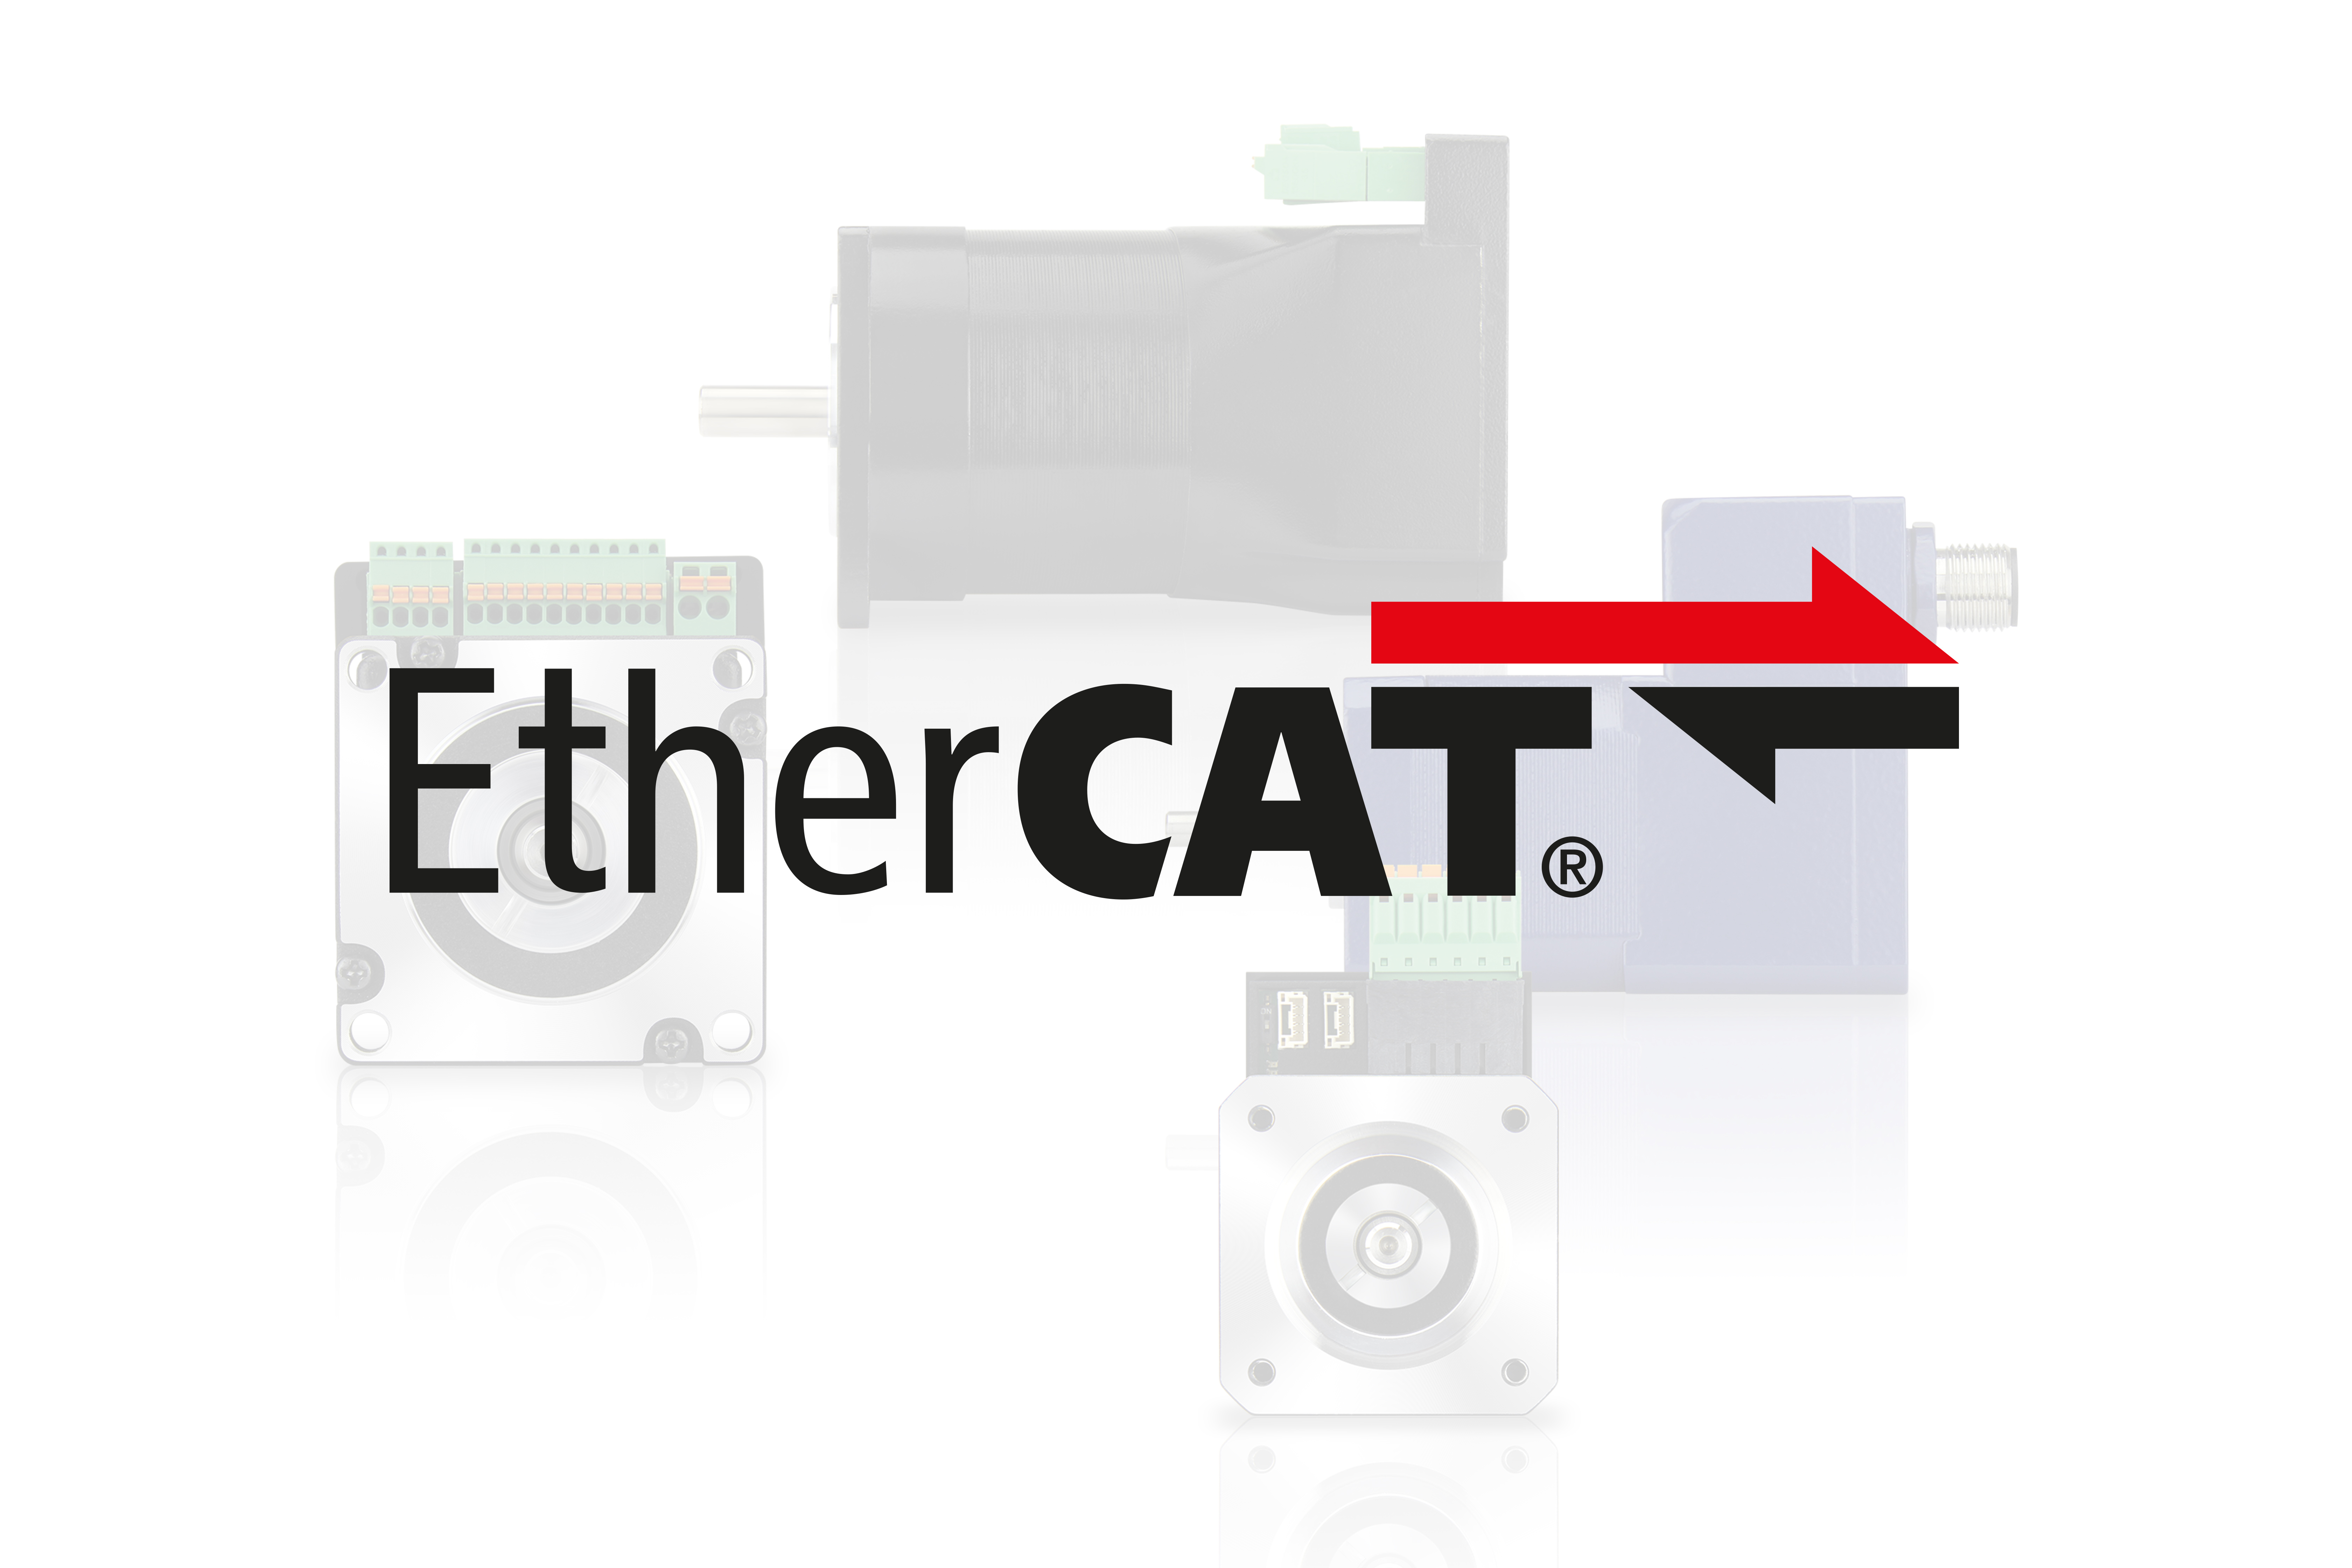 ethercat motor - brushless dc motor and stepper motor